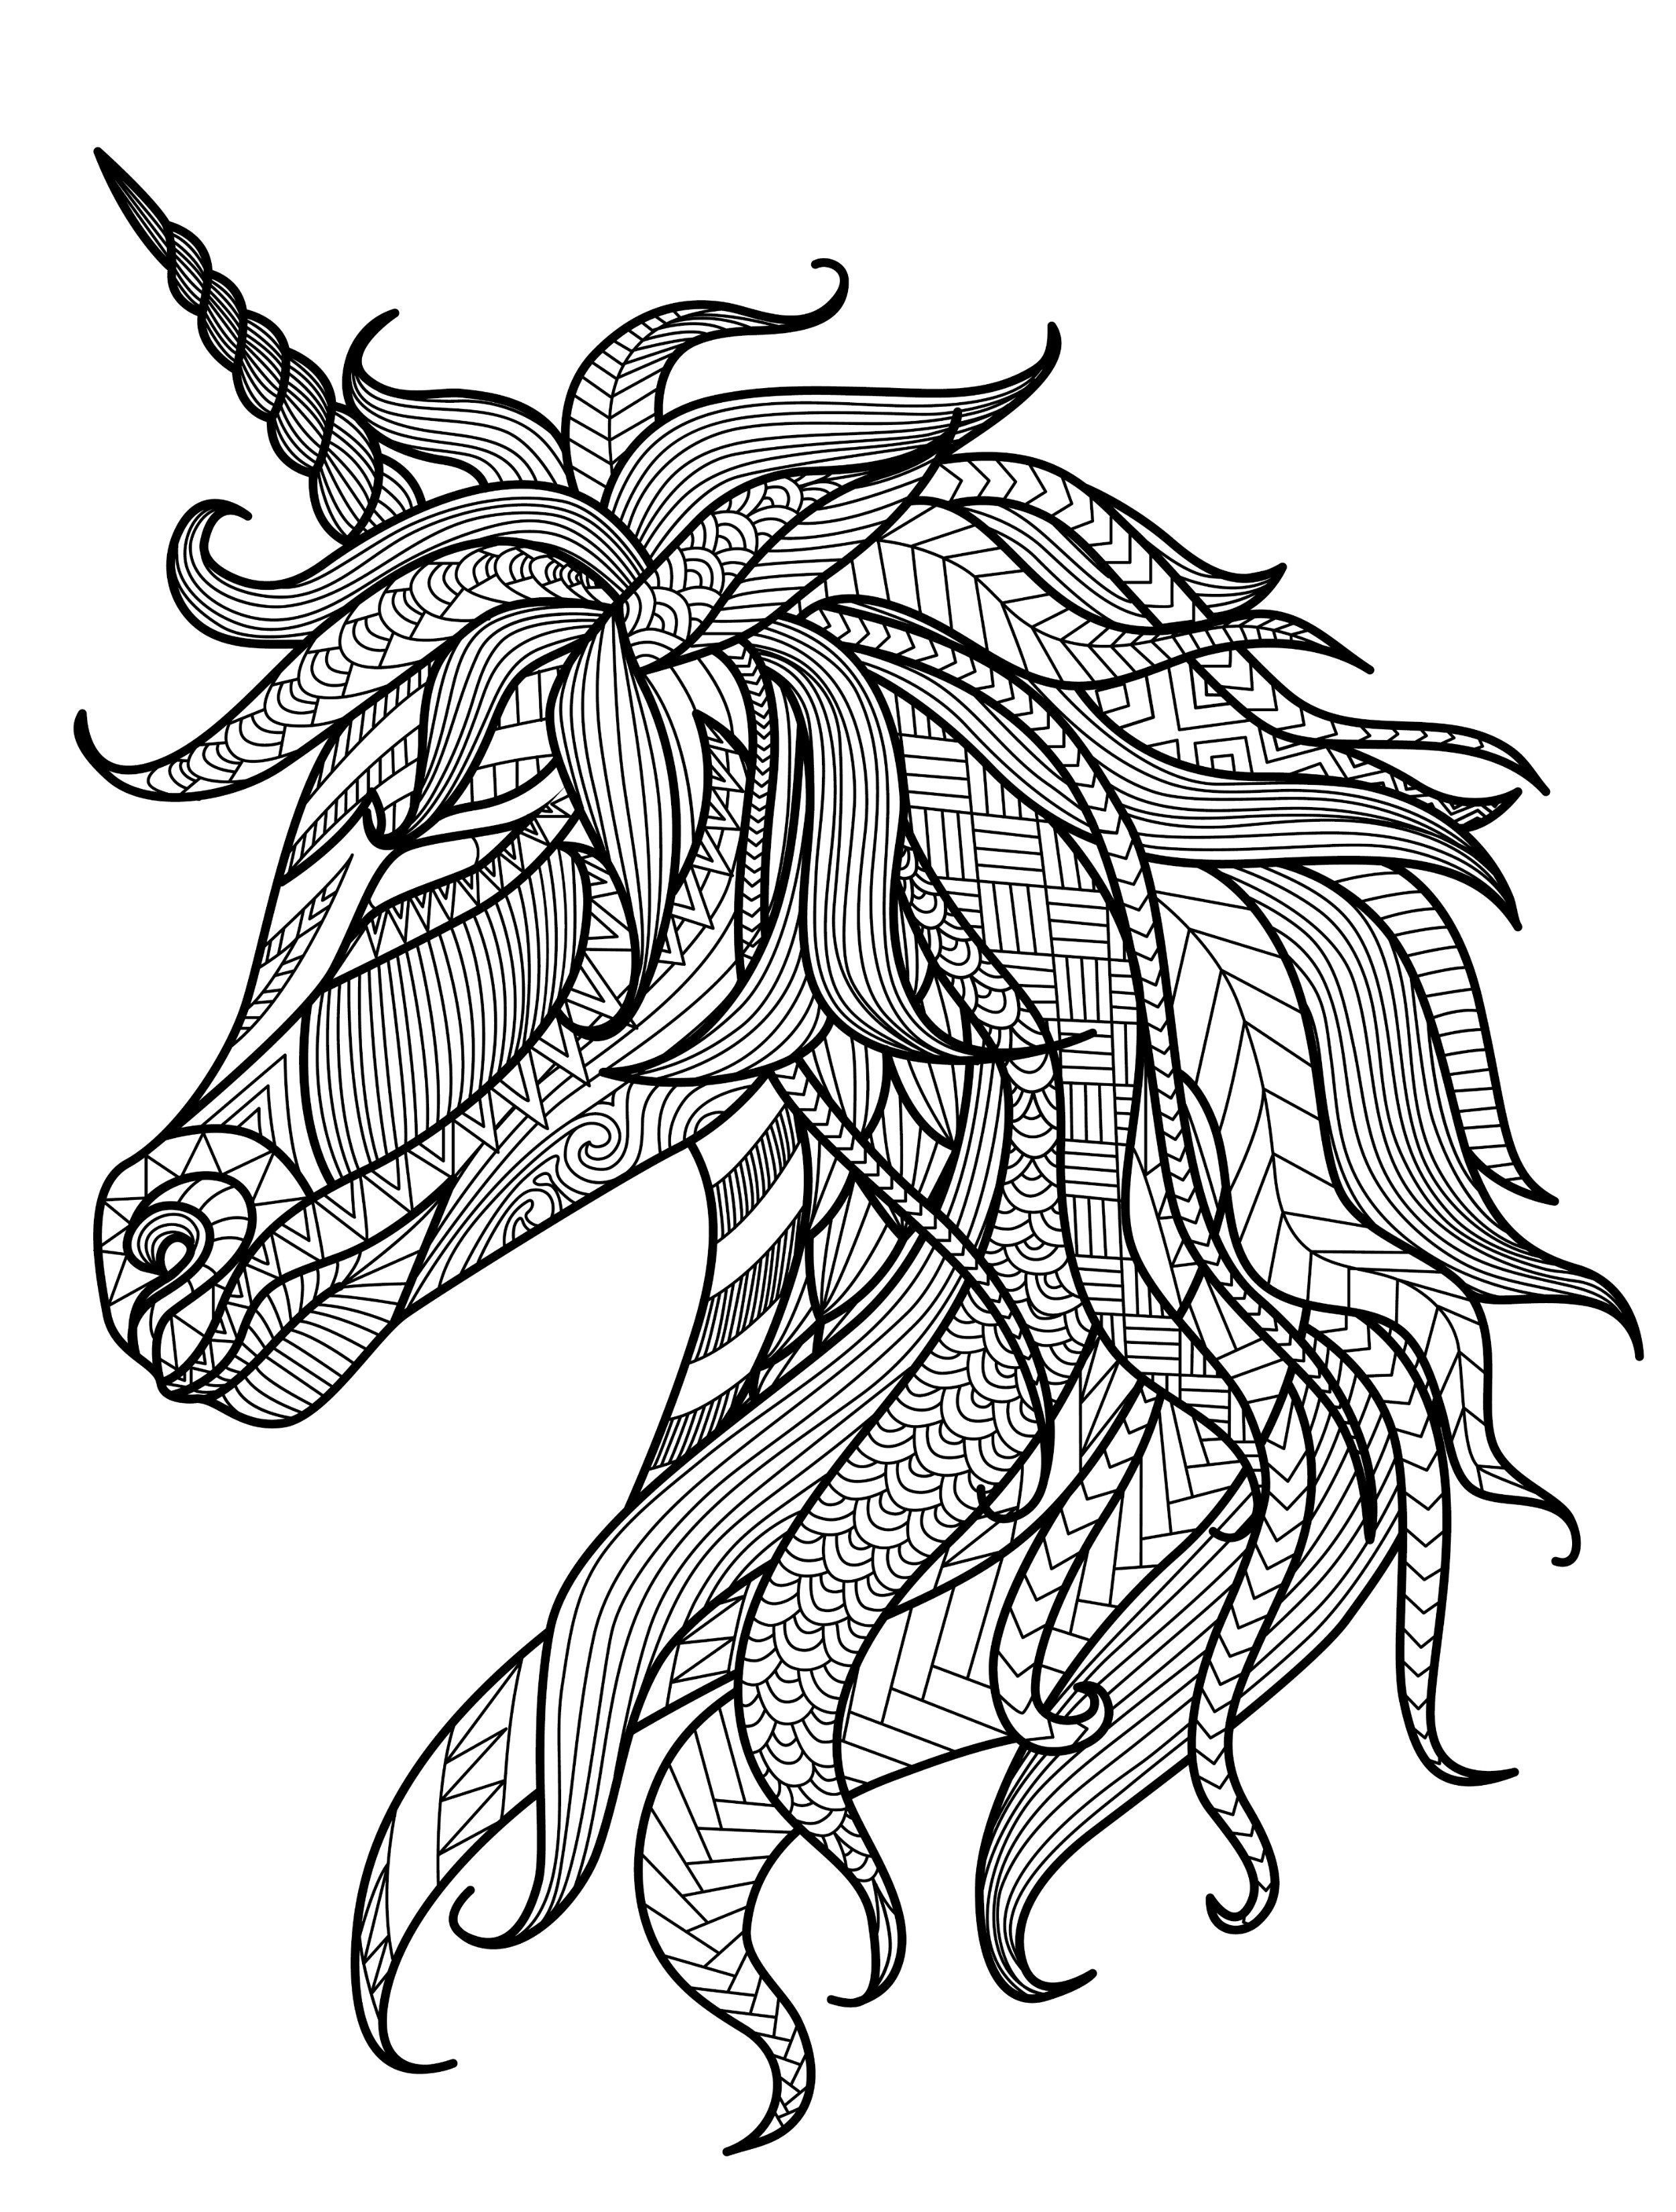 Coloring Pages Unicorn For Adults Coloring Pages Unicorn For Adults Cute Unicorn Coloring Animal Coloring Books Unicorn Coloring Pages Animal Coloring Pages